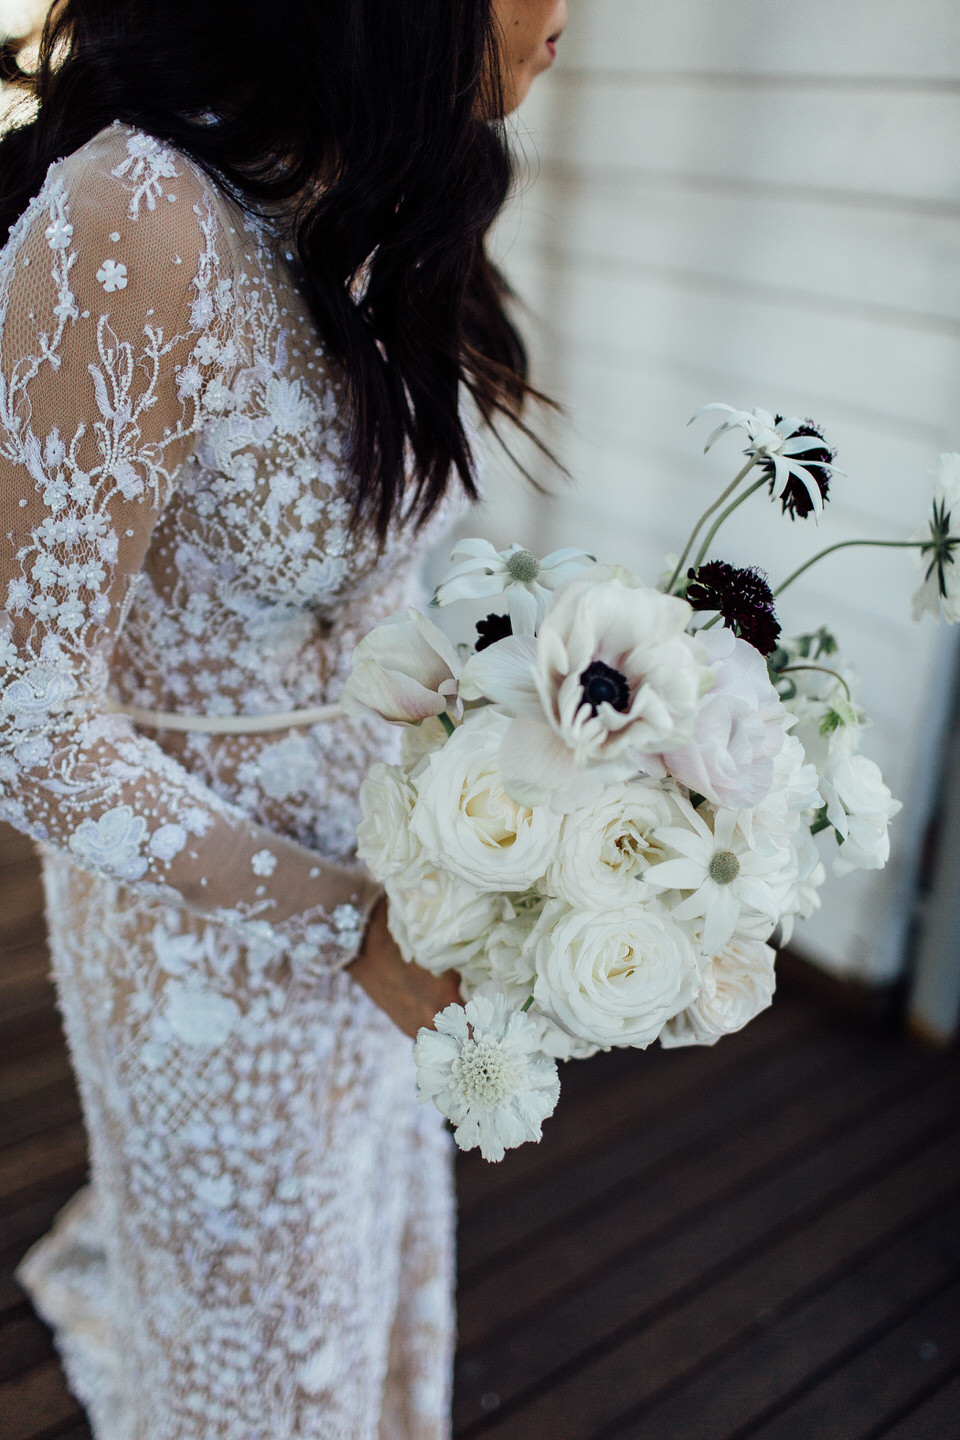 Bride wearing Jane Hill Bridal dress and holding white flowers by Sophie Rothwell florist